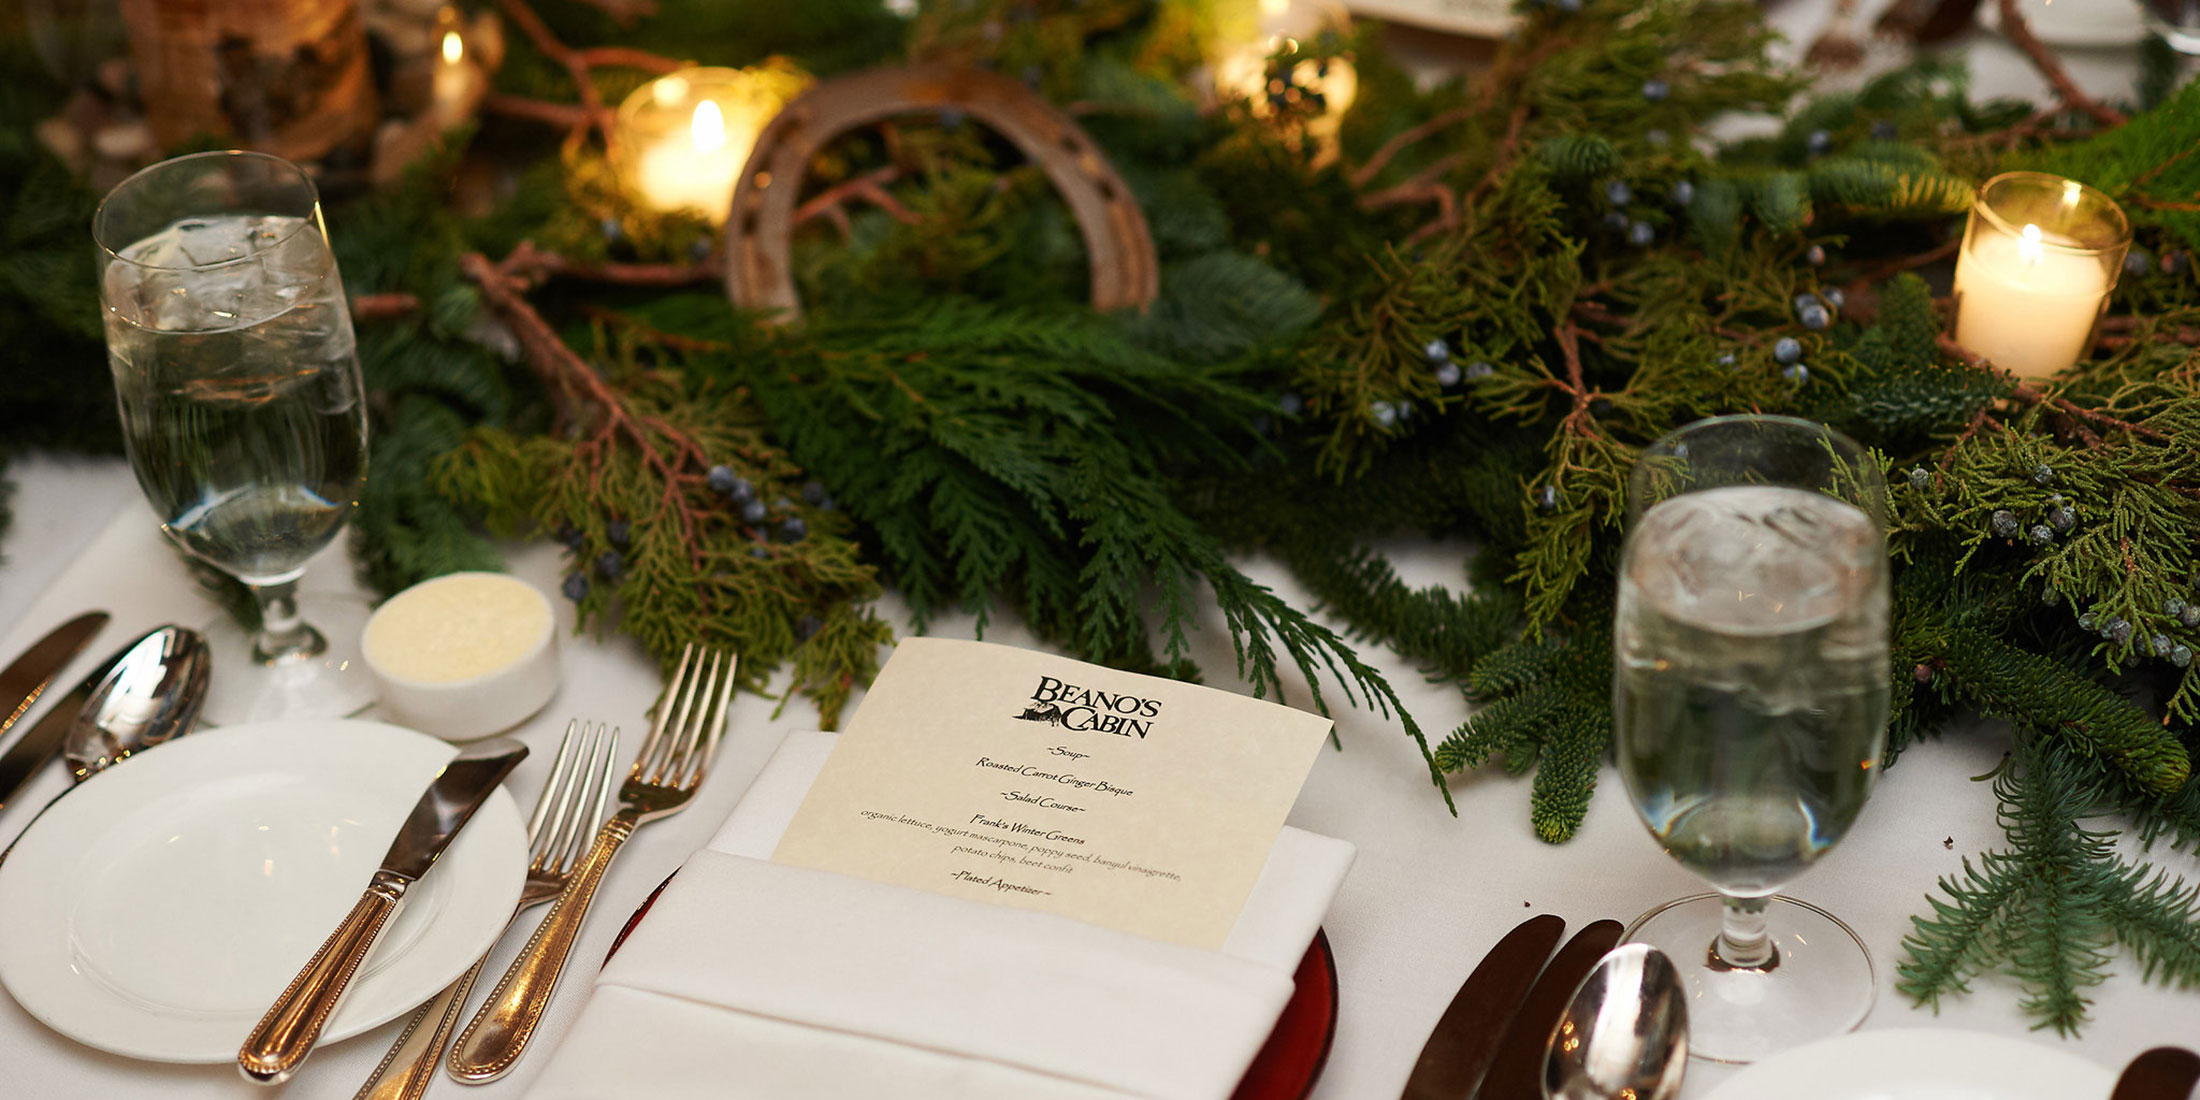 rehearsal dinners, full service wedding planning services